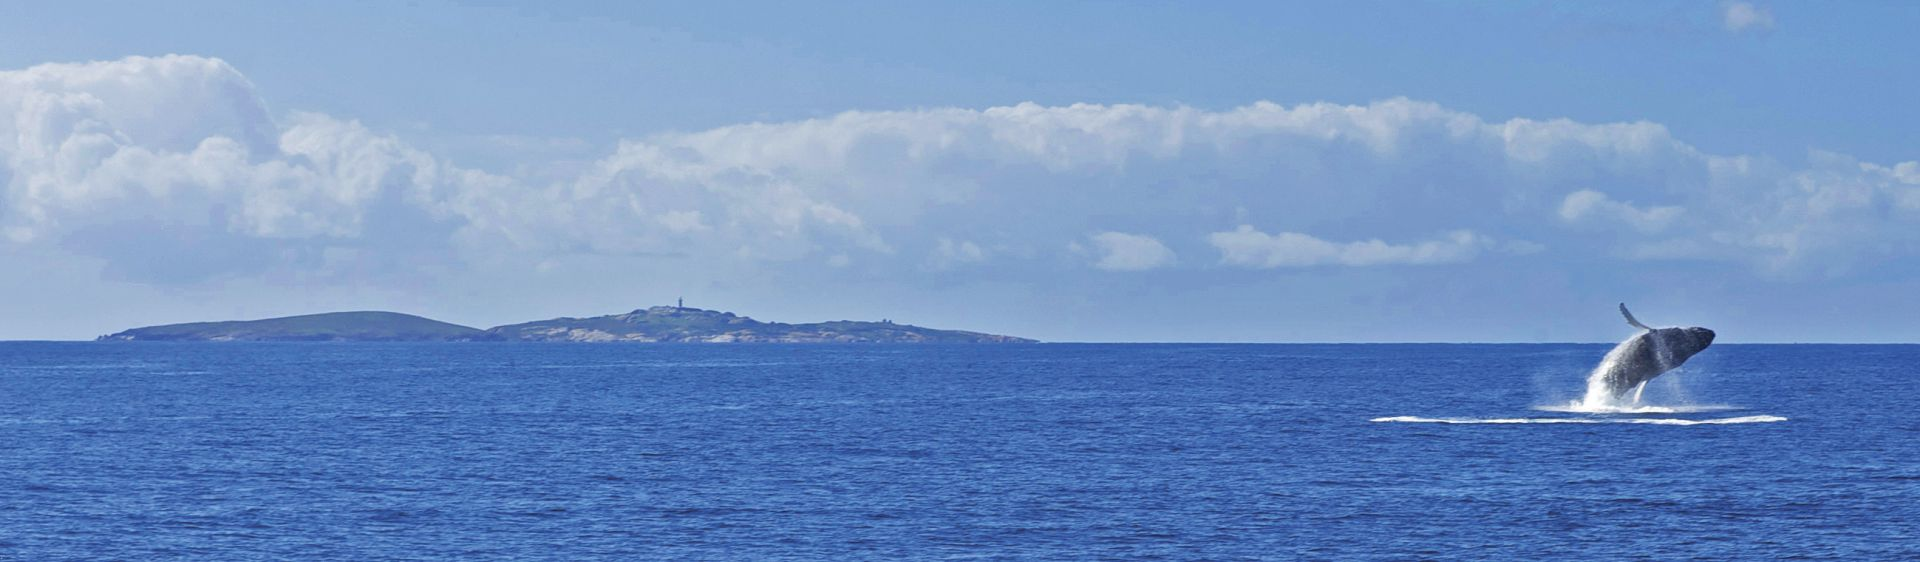 Whale Watching in Narooma, South Coast